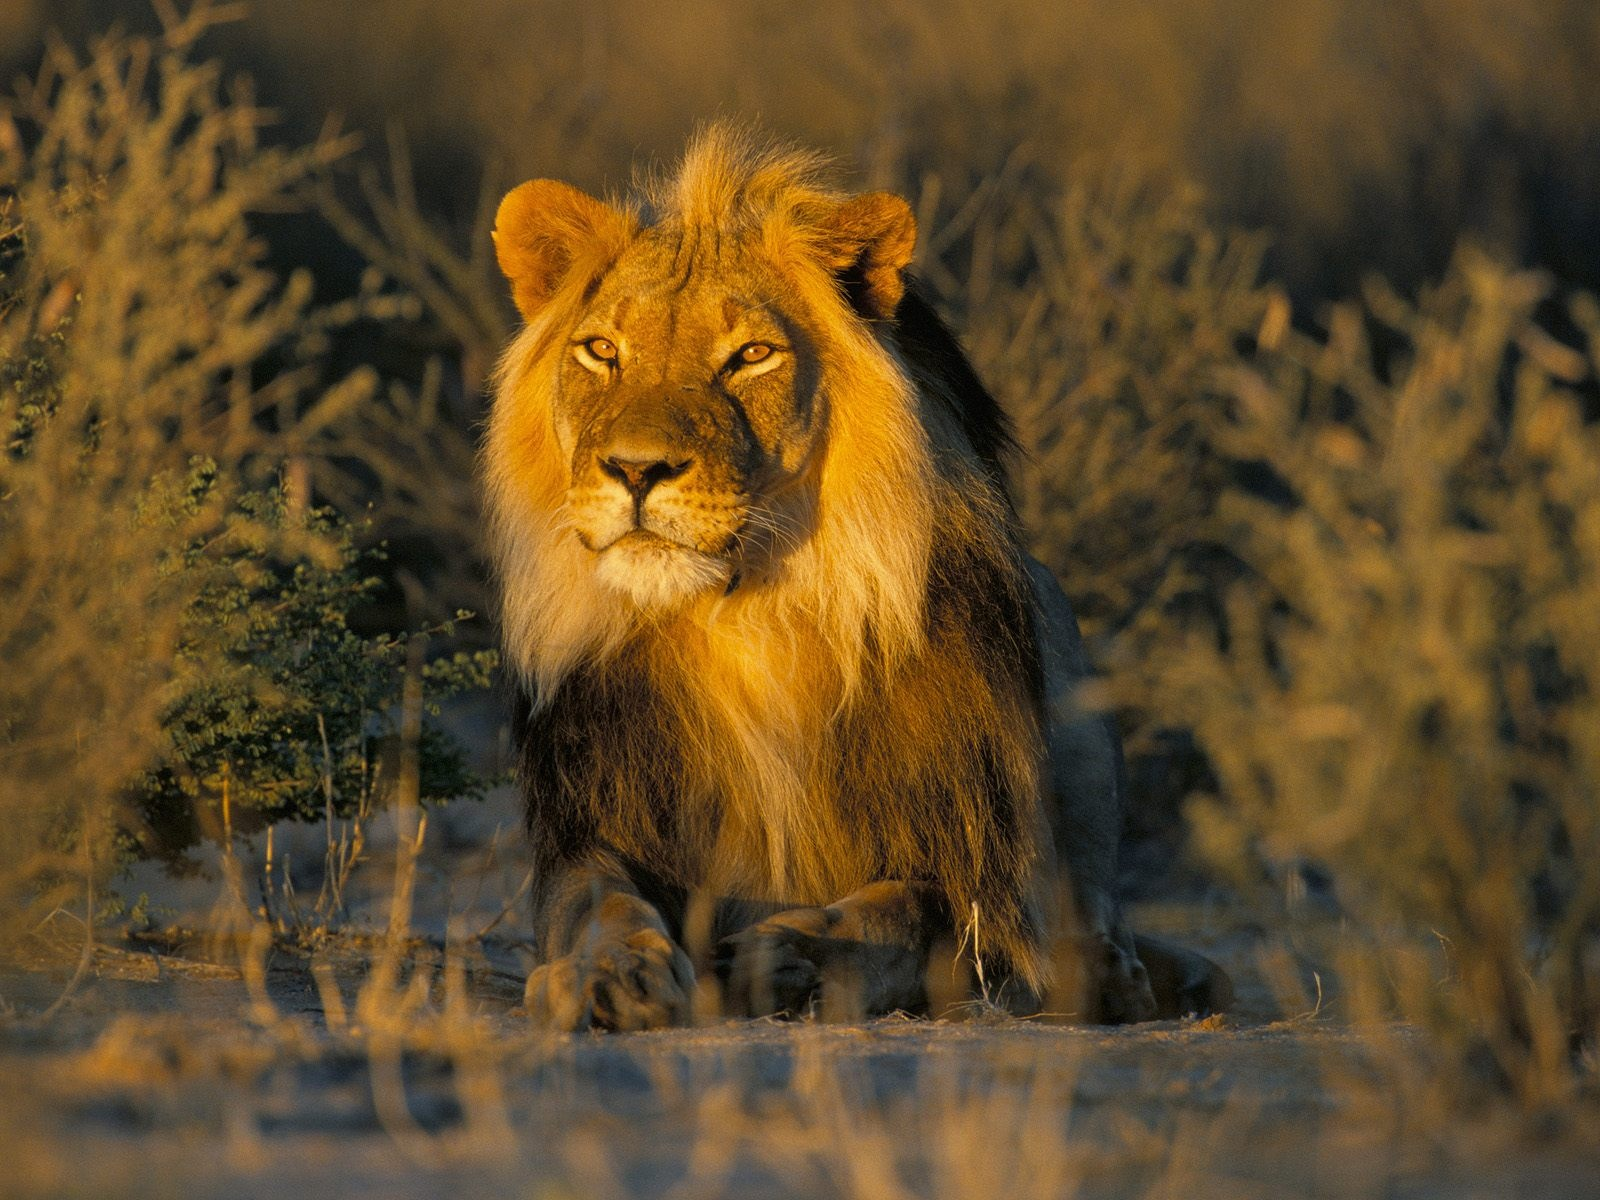 lions wallpapers lion photos animals hd lion photos wild lions picture 1600x1200